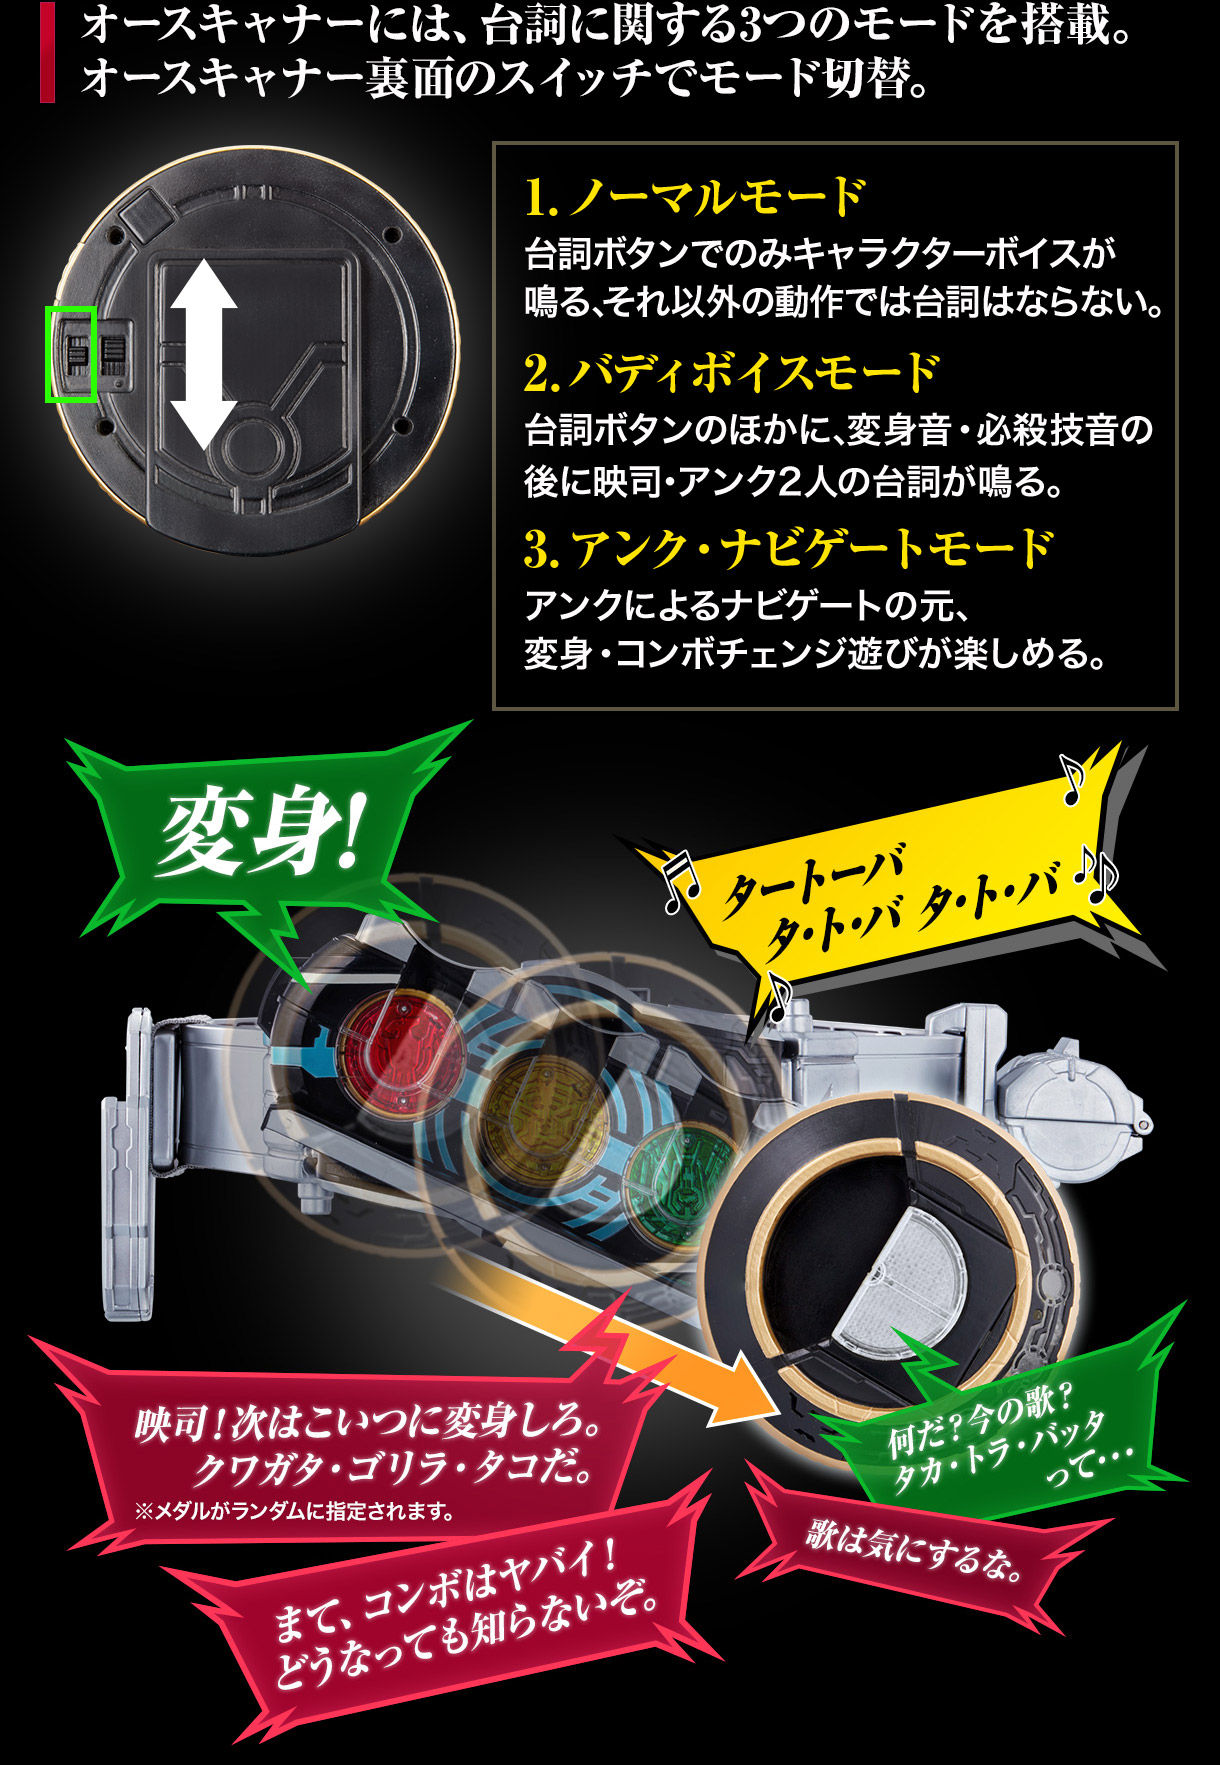 COMPLETE SELECTION MODIFICATION OOO DRIVER COMPLETE SET(CSMオーズドライバーコンプリートセット)-007